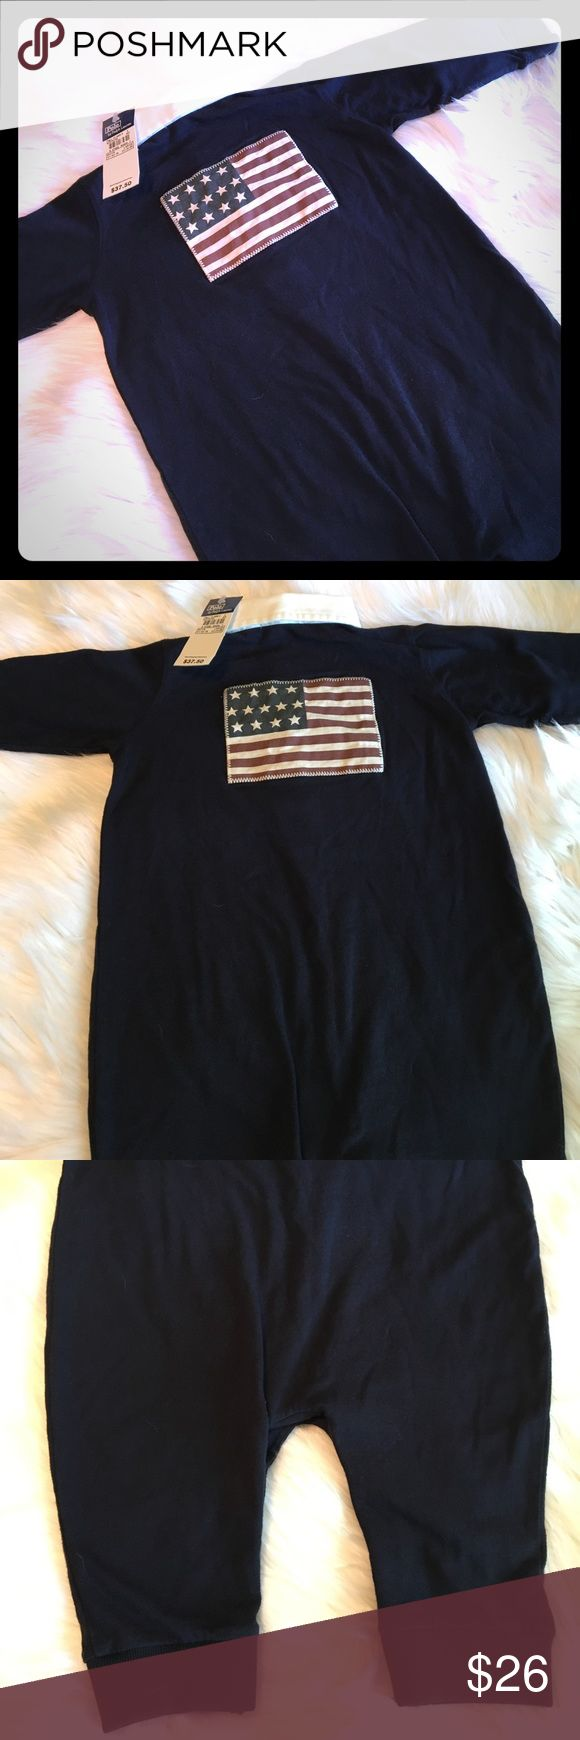 🇺🇸NWT Ralph Lauren Boy's Flag One Piece Sz L-18M 🇺🇸Brand NEW Polo by Ralph Lauren American Flag One Piece Outfit🇺🇸  🇺🇸Just in time for your July 4th Celebrations🍉🍗🌭🌽 🇺🇸Navy Blue w/American Flag on the back 🇺🇸Rugby w/bottom snaps 🇺🇸Size L 🇺🇸Never worn, tags still attached!!  Please feel free to ask questions...(6-317)  NOTE: 🚫Trades or off site transactions  From a Clean, 🚭Free, 🐶&🐱Friendly🏡 🎥For your protection & mine ALL sales are recorded from preparation to…